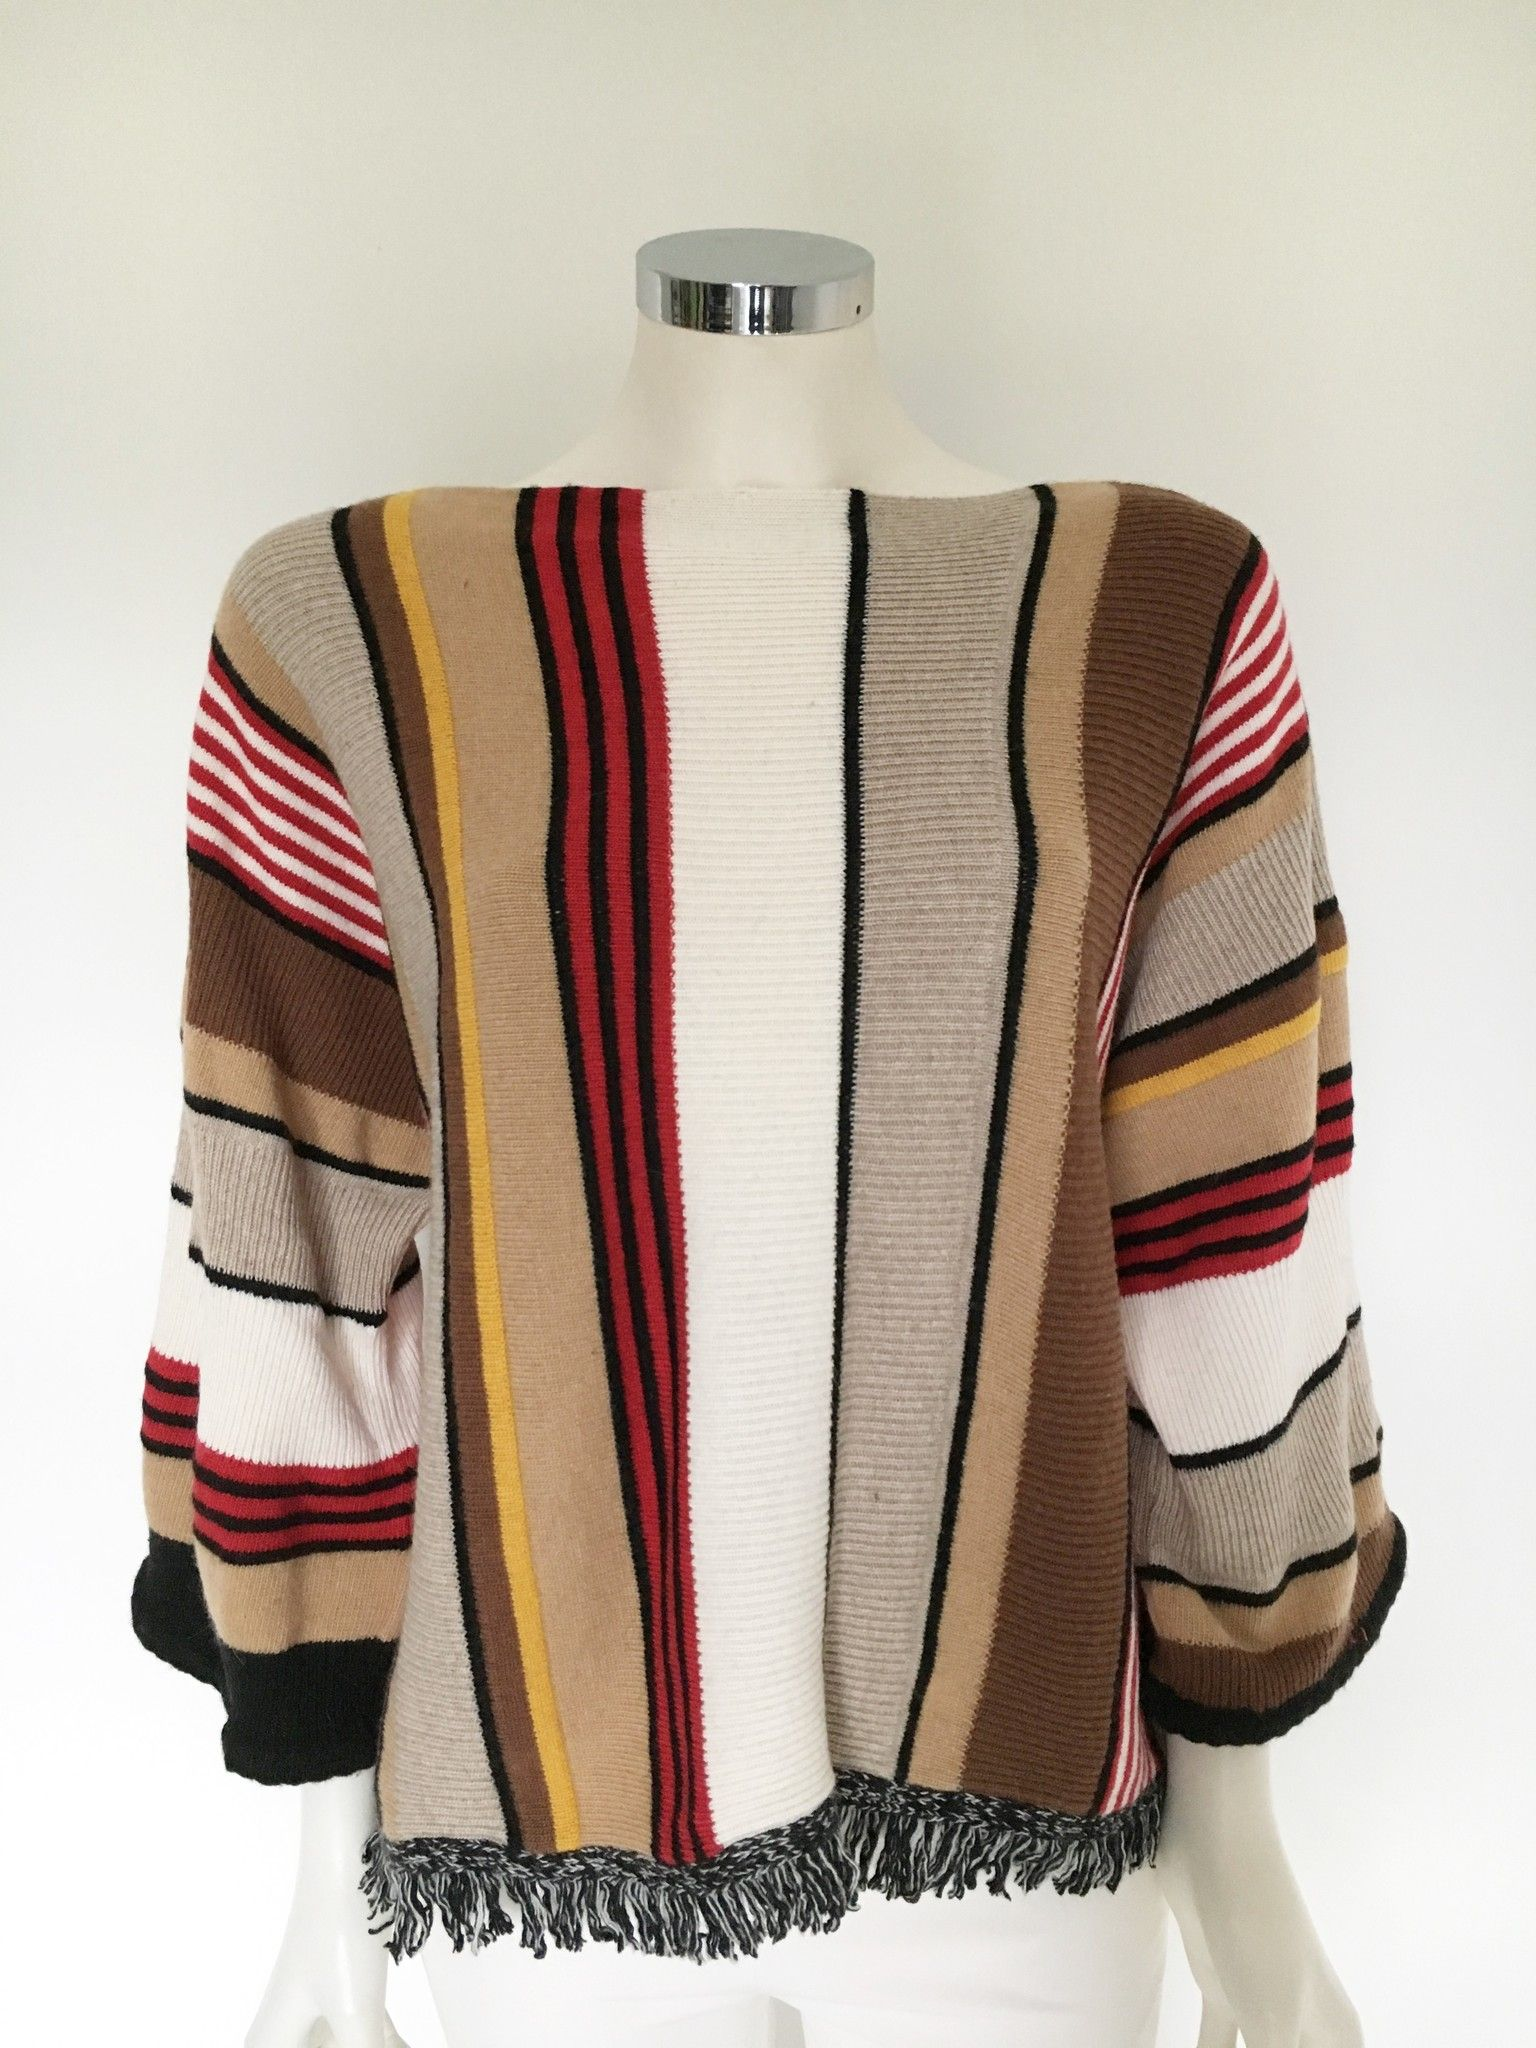 LadyBug Striped Sweater with Fringes Cod.7020Q